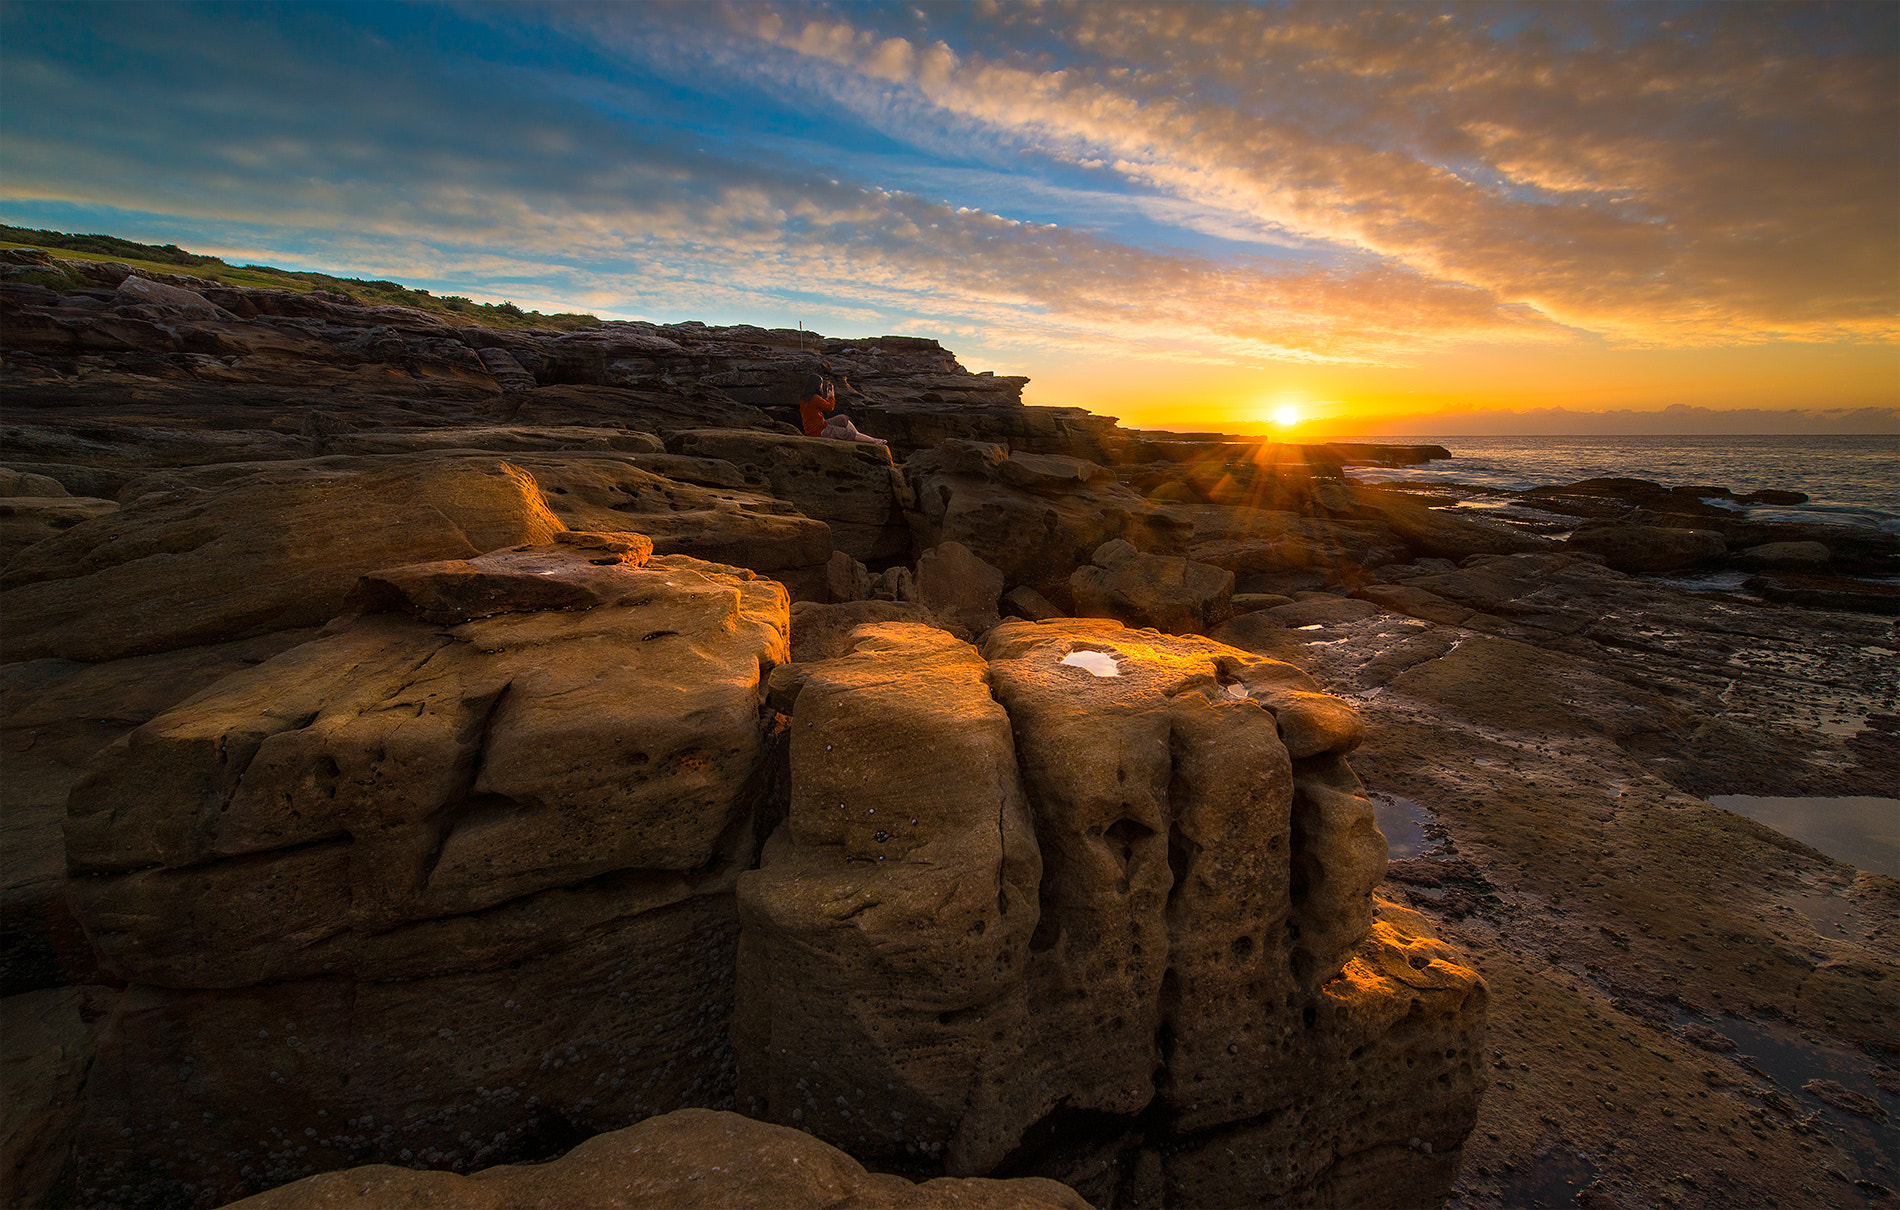 Photograph The Rocks by SKYDANCER ! on 500px